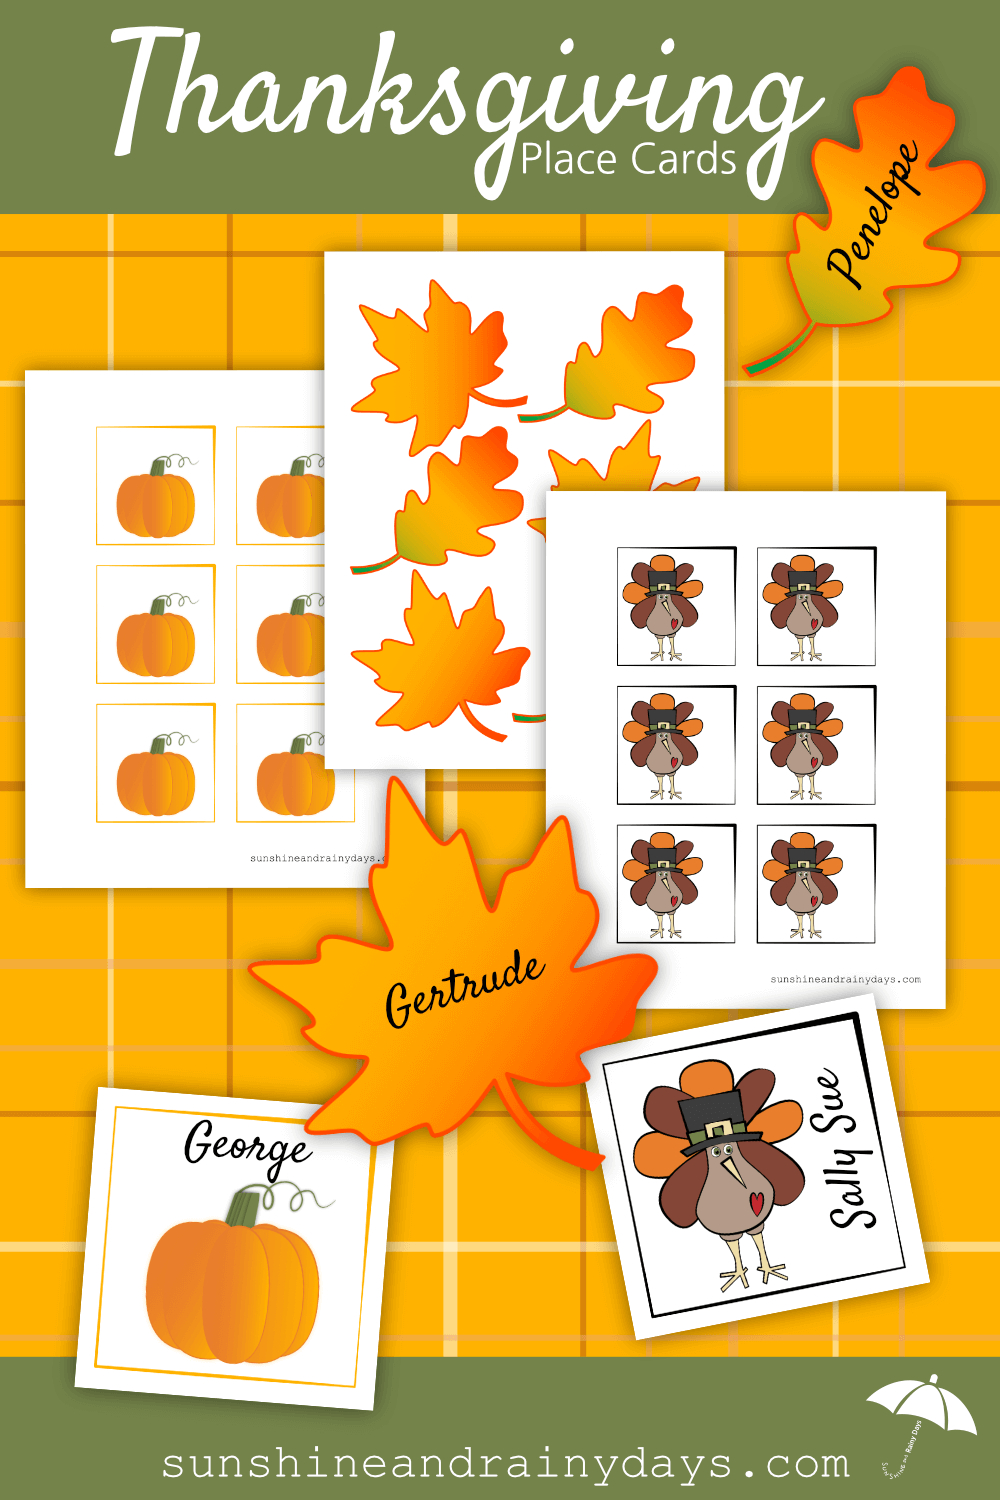 Thanksgiving Place Card Printable   Thanksgiving Printables - Free Printable Thanksgiving Place Cards To Color